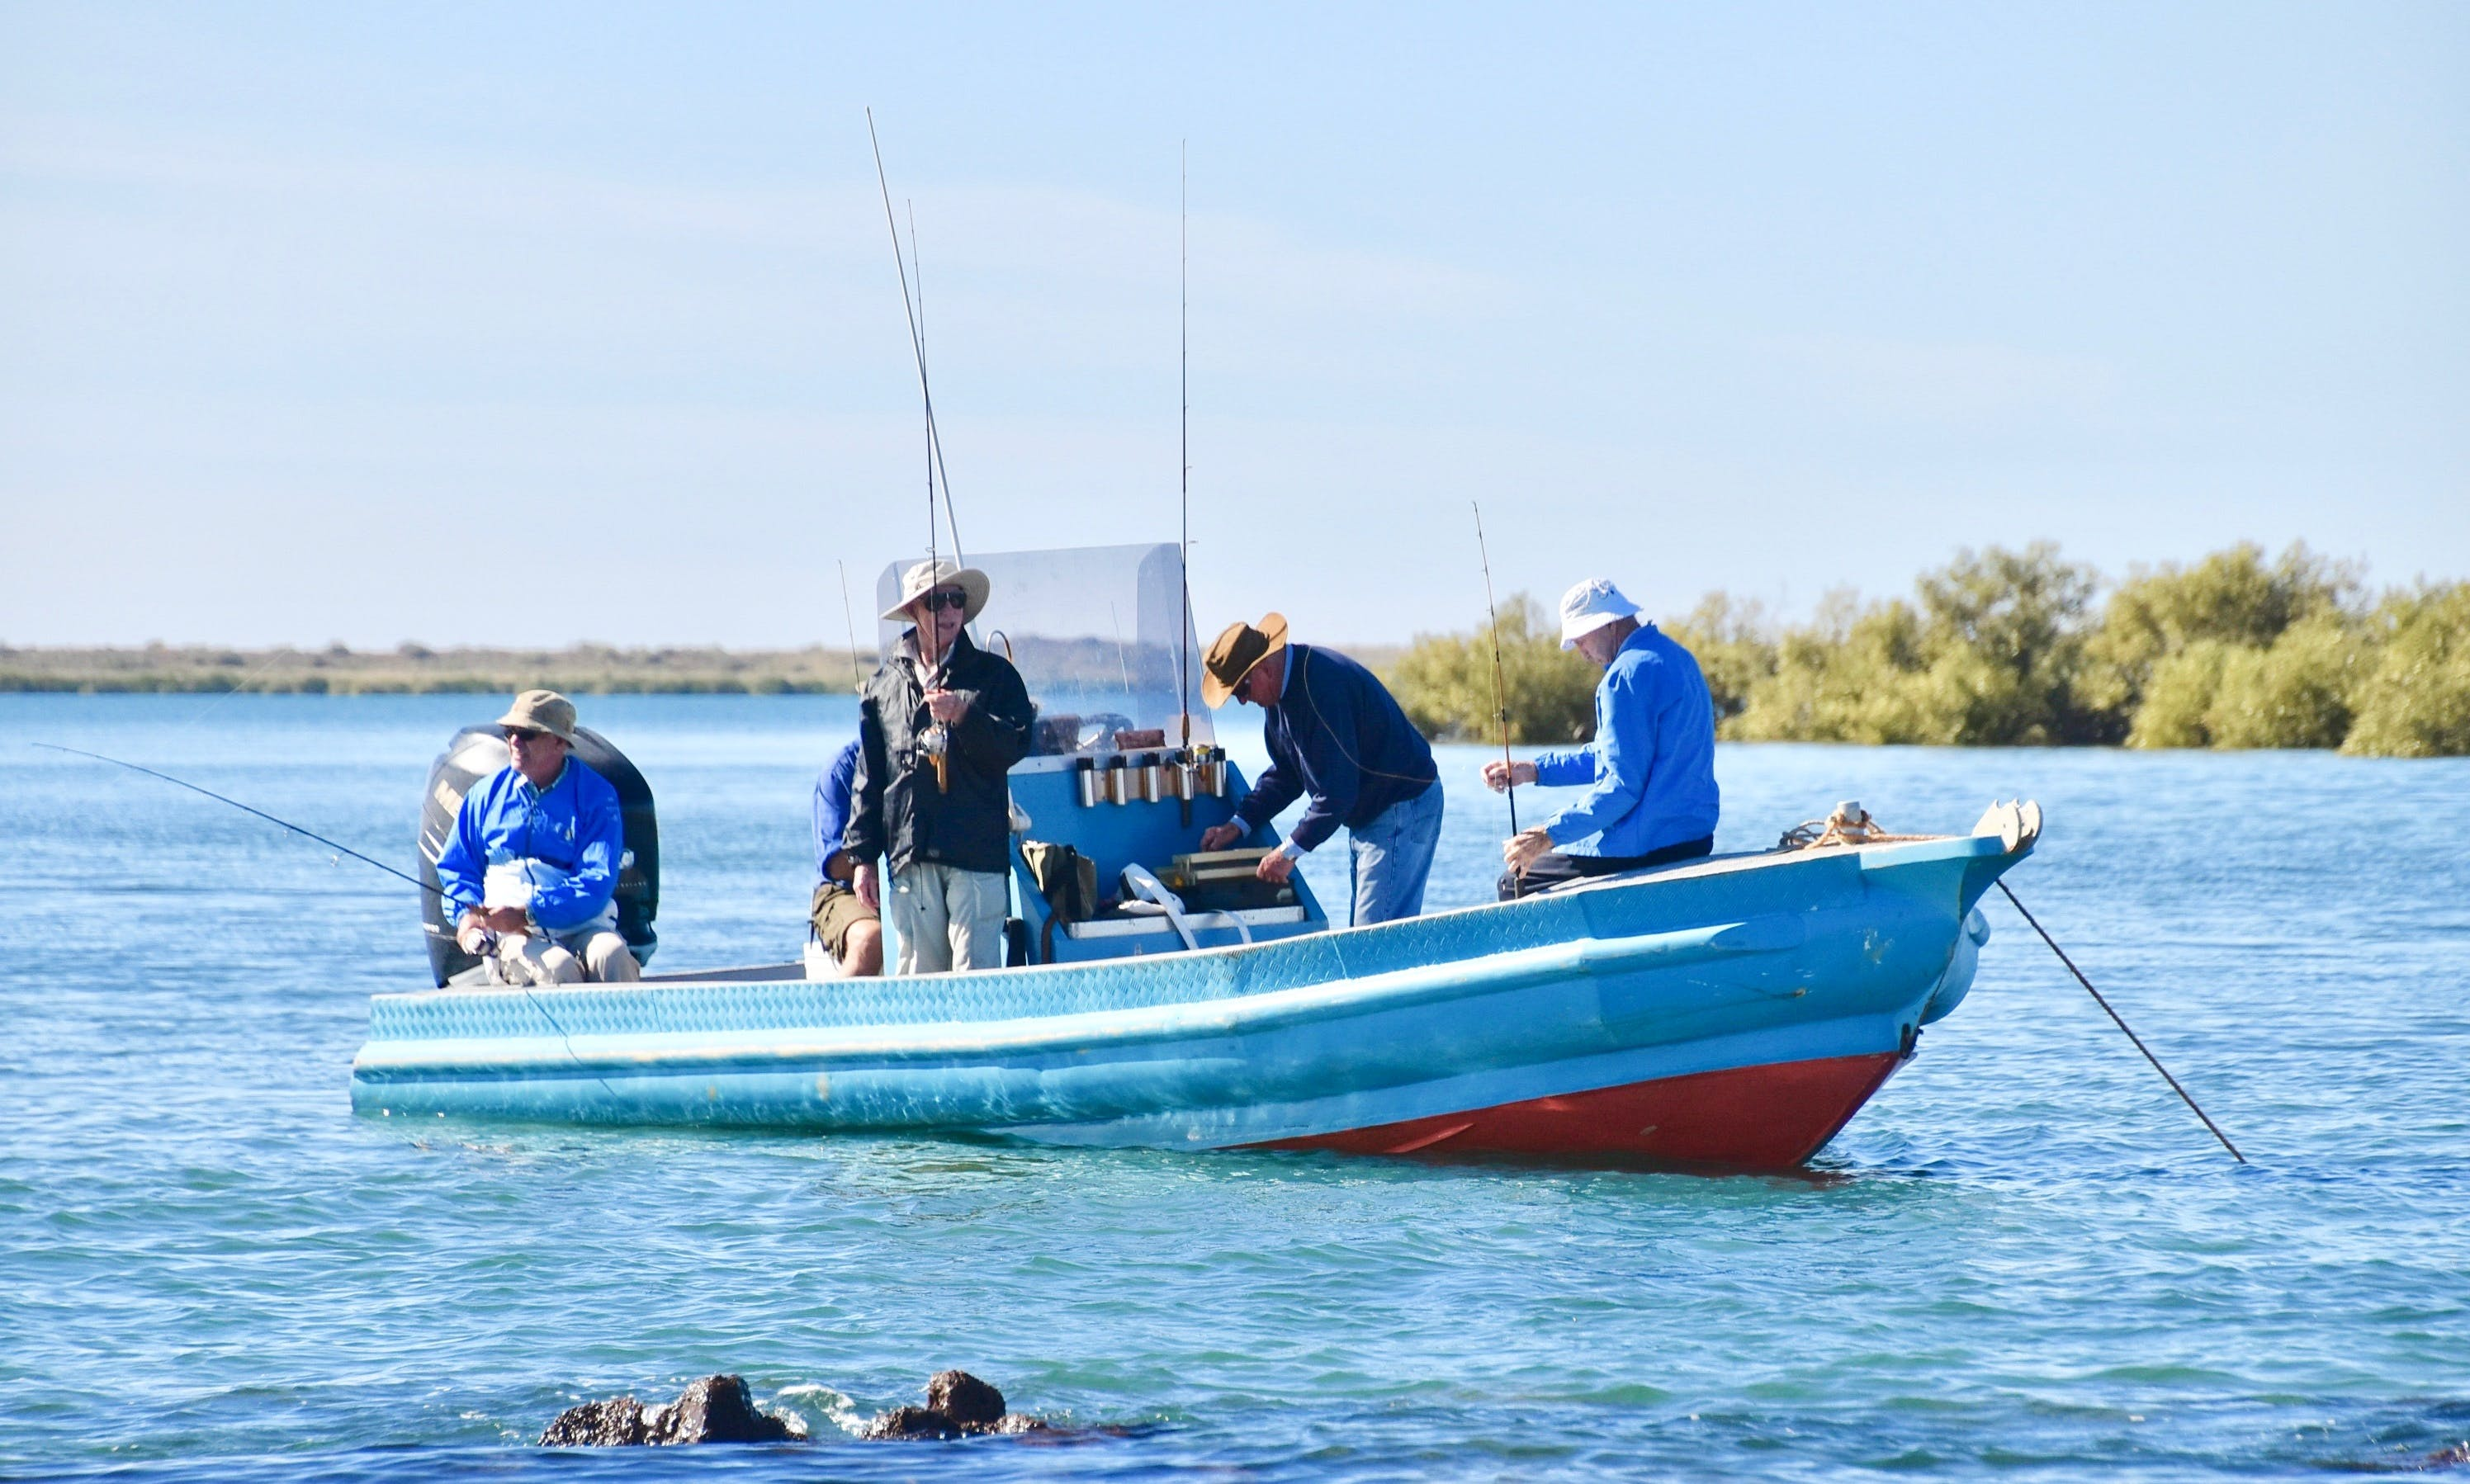 Enjoy Fishing in the Exmouth Gulf, Western Australia on Center Console